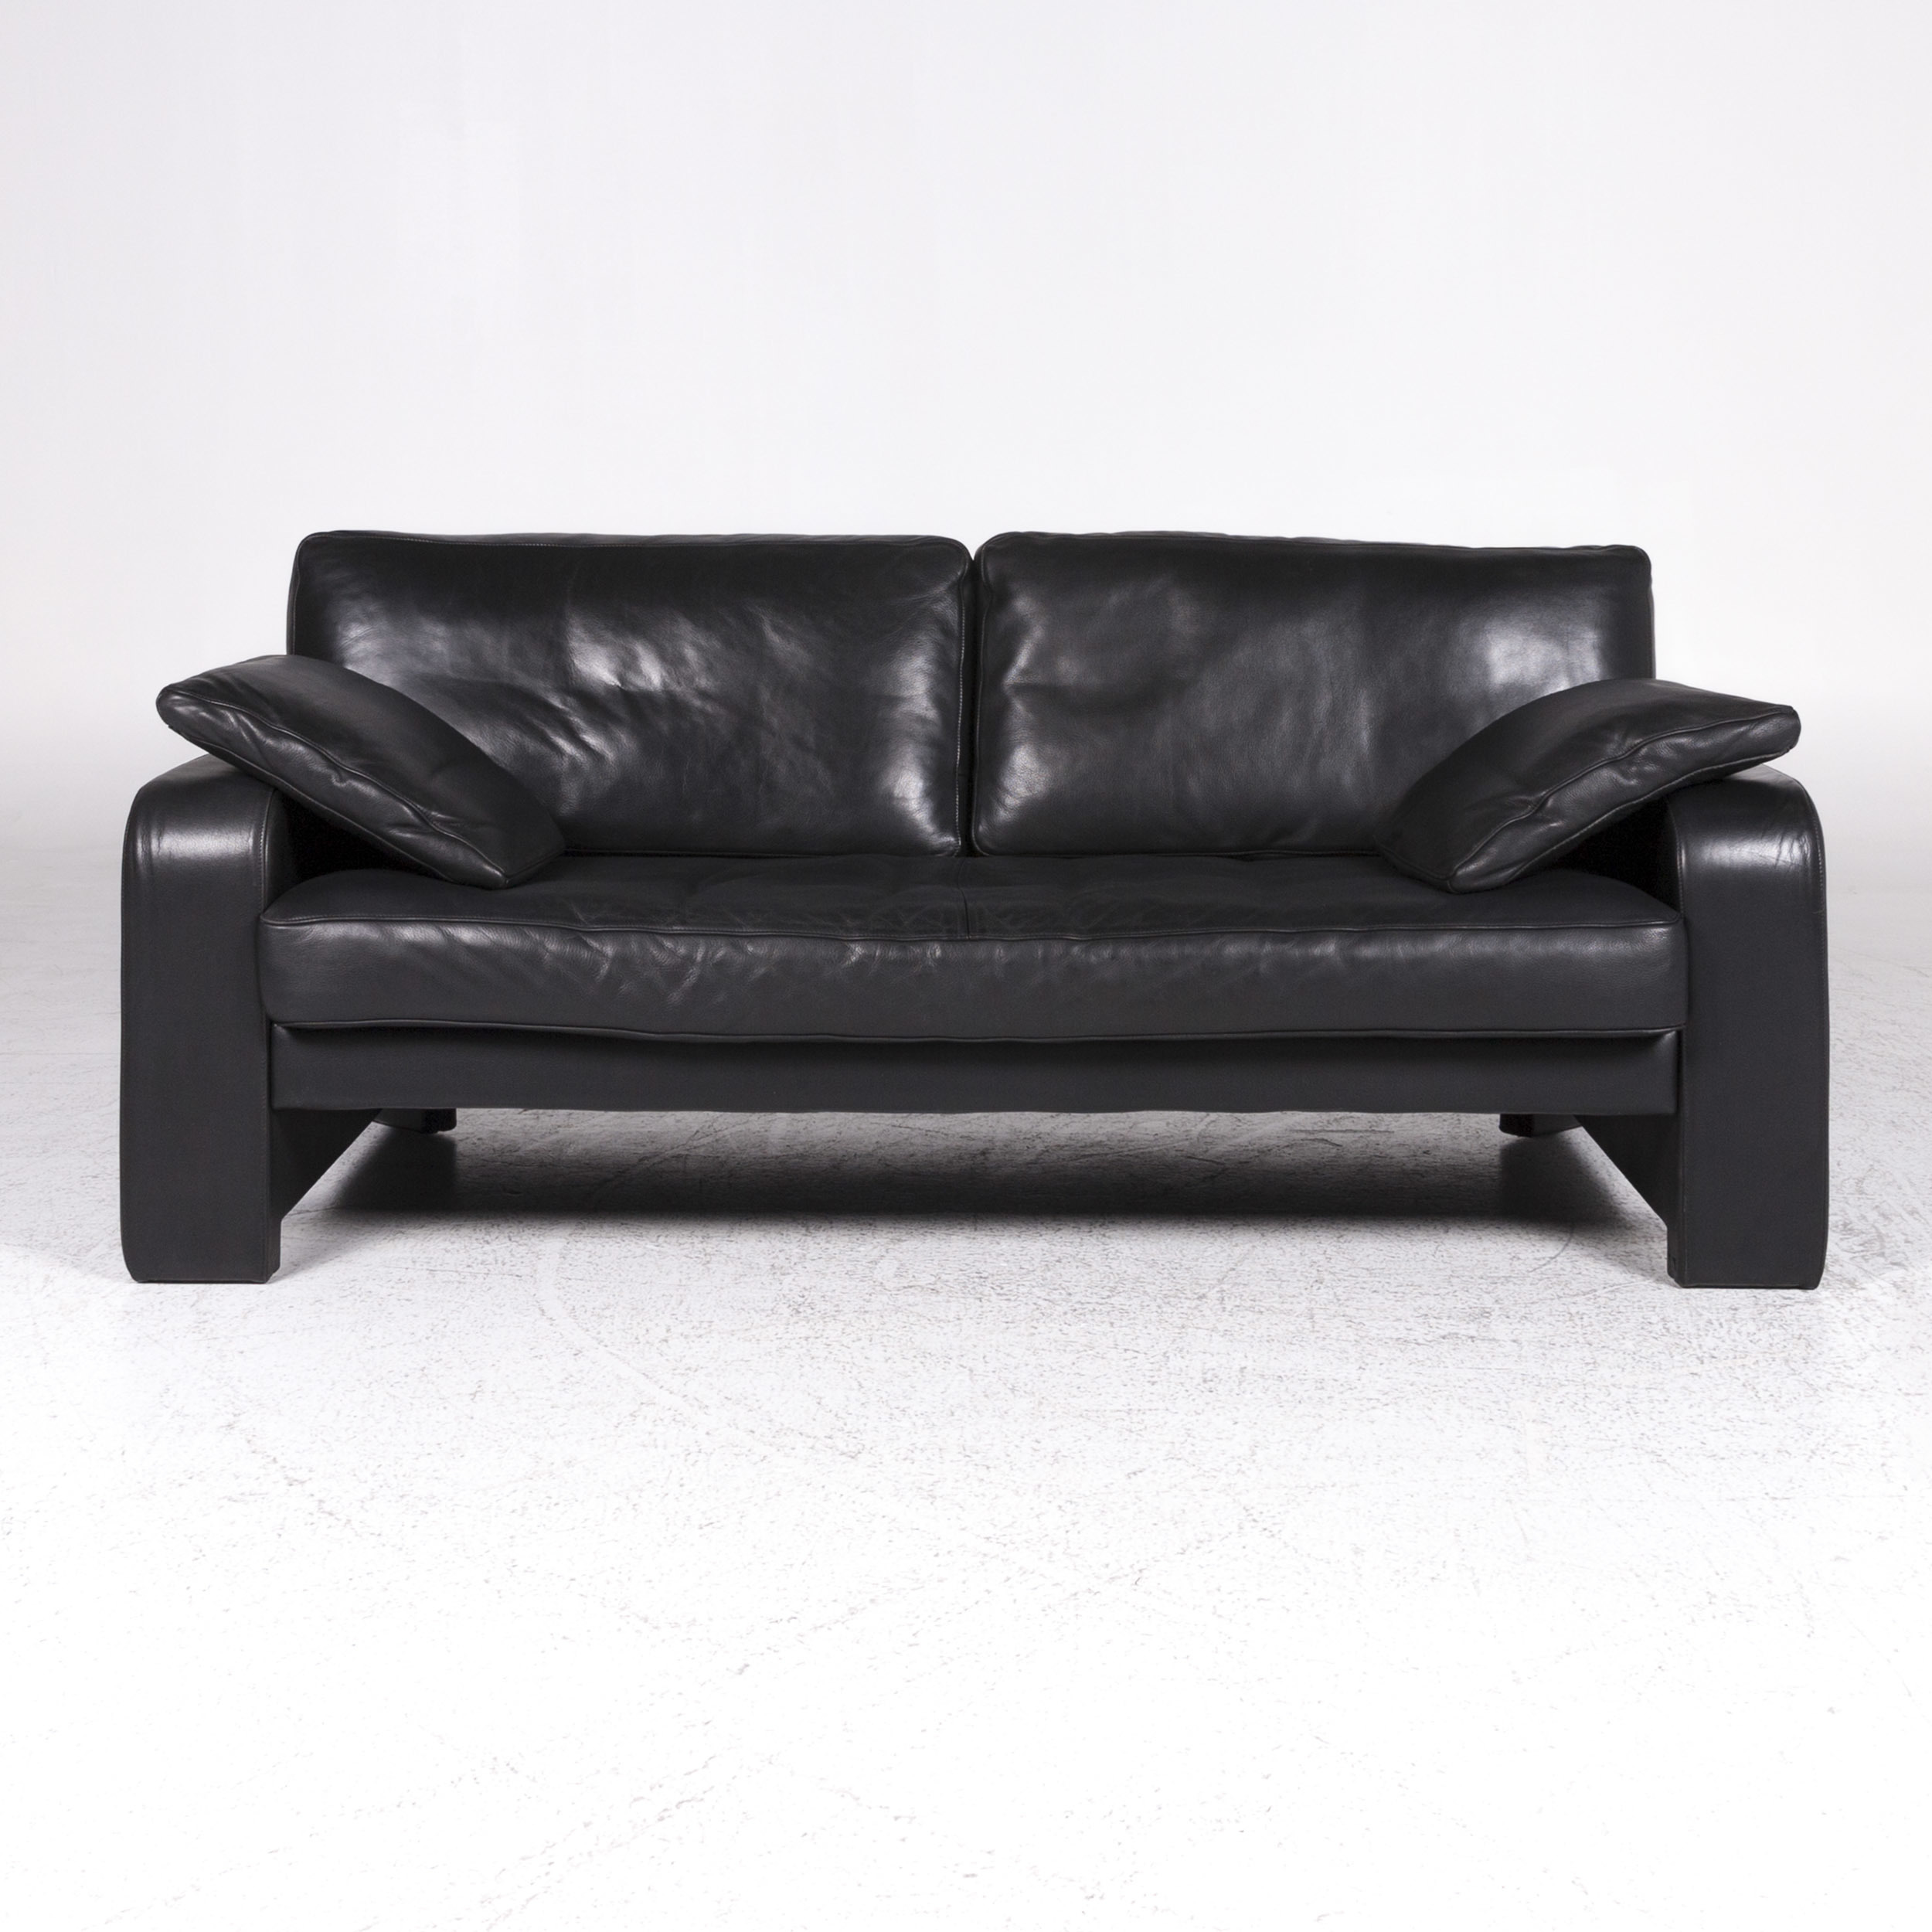 Zuco Designer Leather Sofa Black Two Seater Couch 9437 Zuco